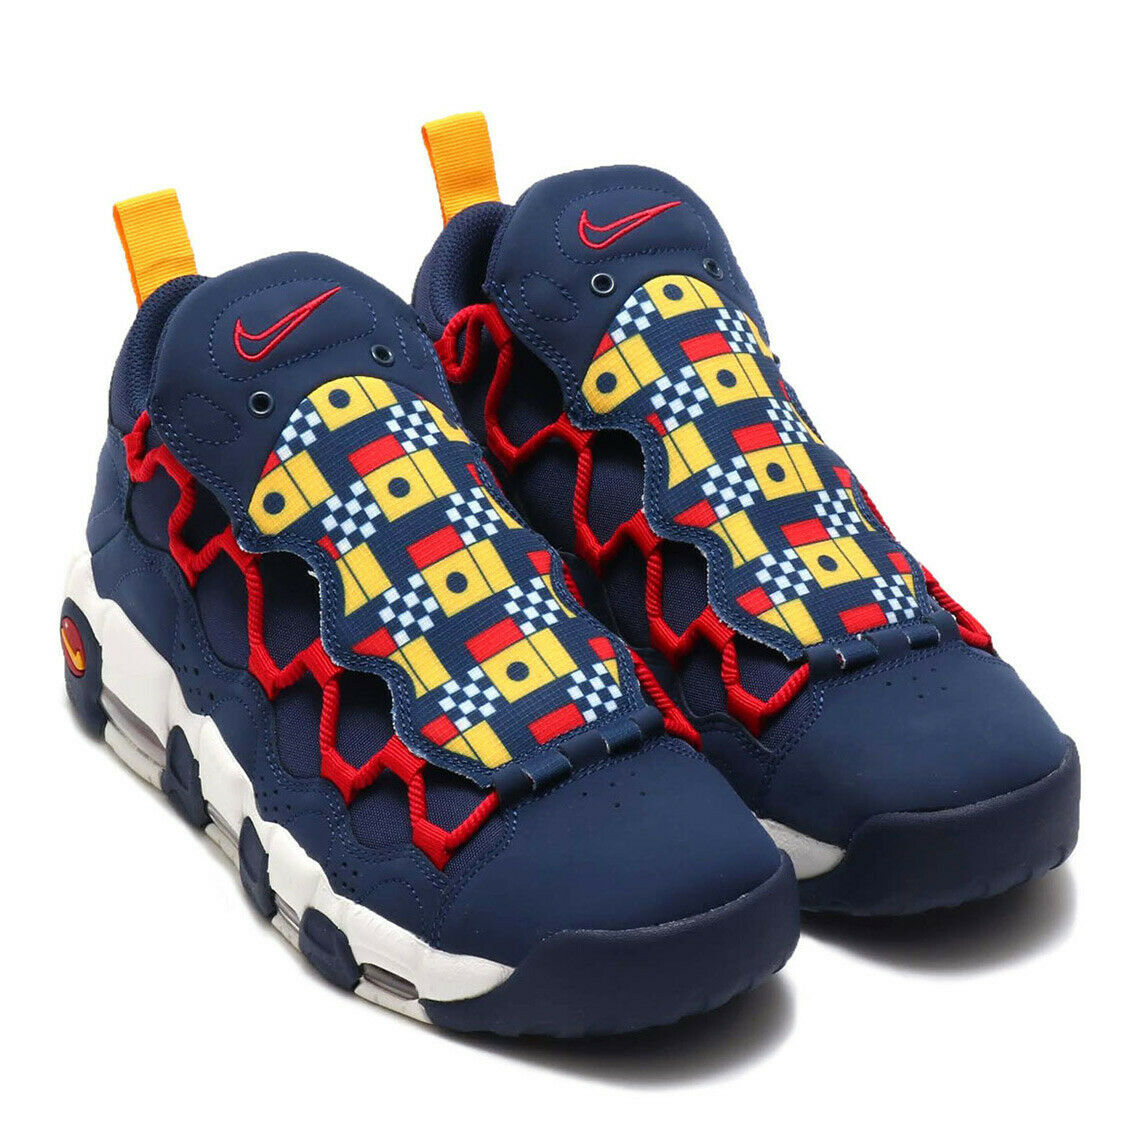 Nike Air More Mo Money Uptempo Nautical Redux Navy blueee Red Yellow AR5396-400